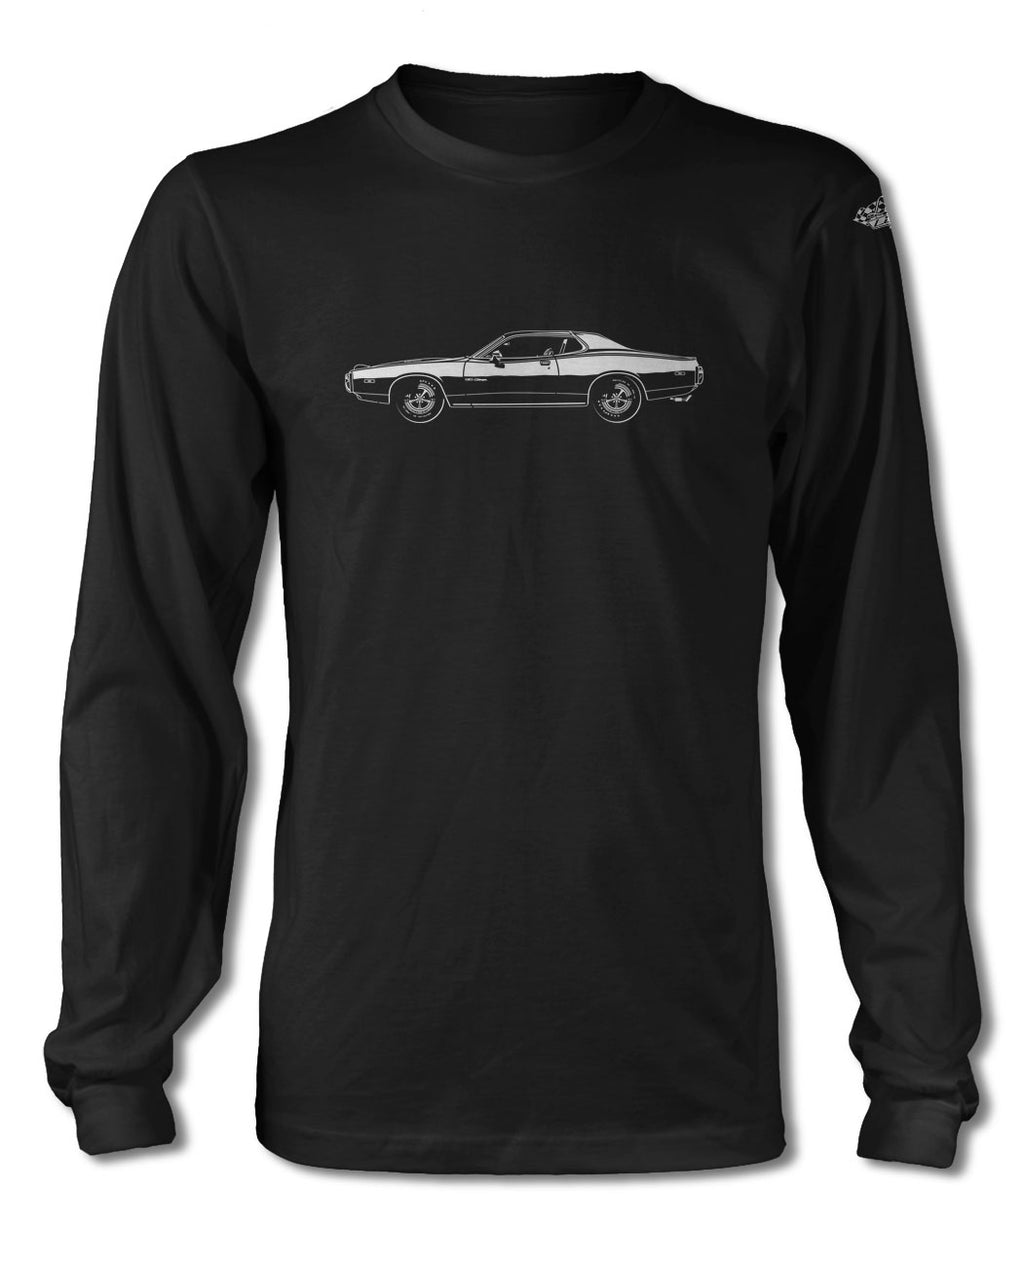 1973 Dodge Charger Rallye 440 Magnum Hardtop T-Shirt - Long Sleeves - Side View